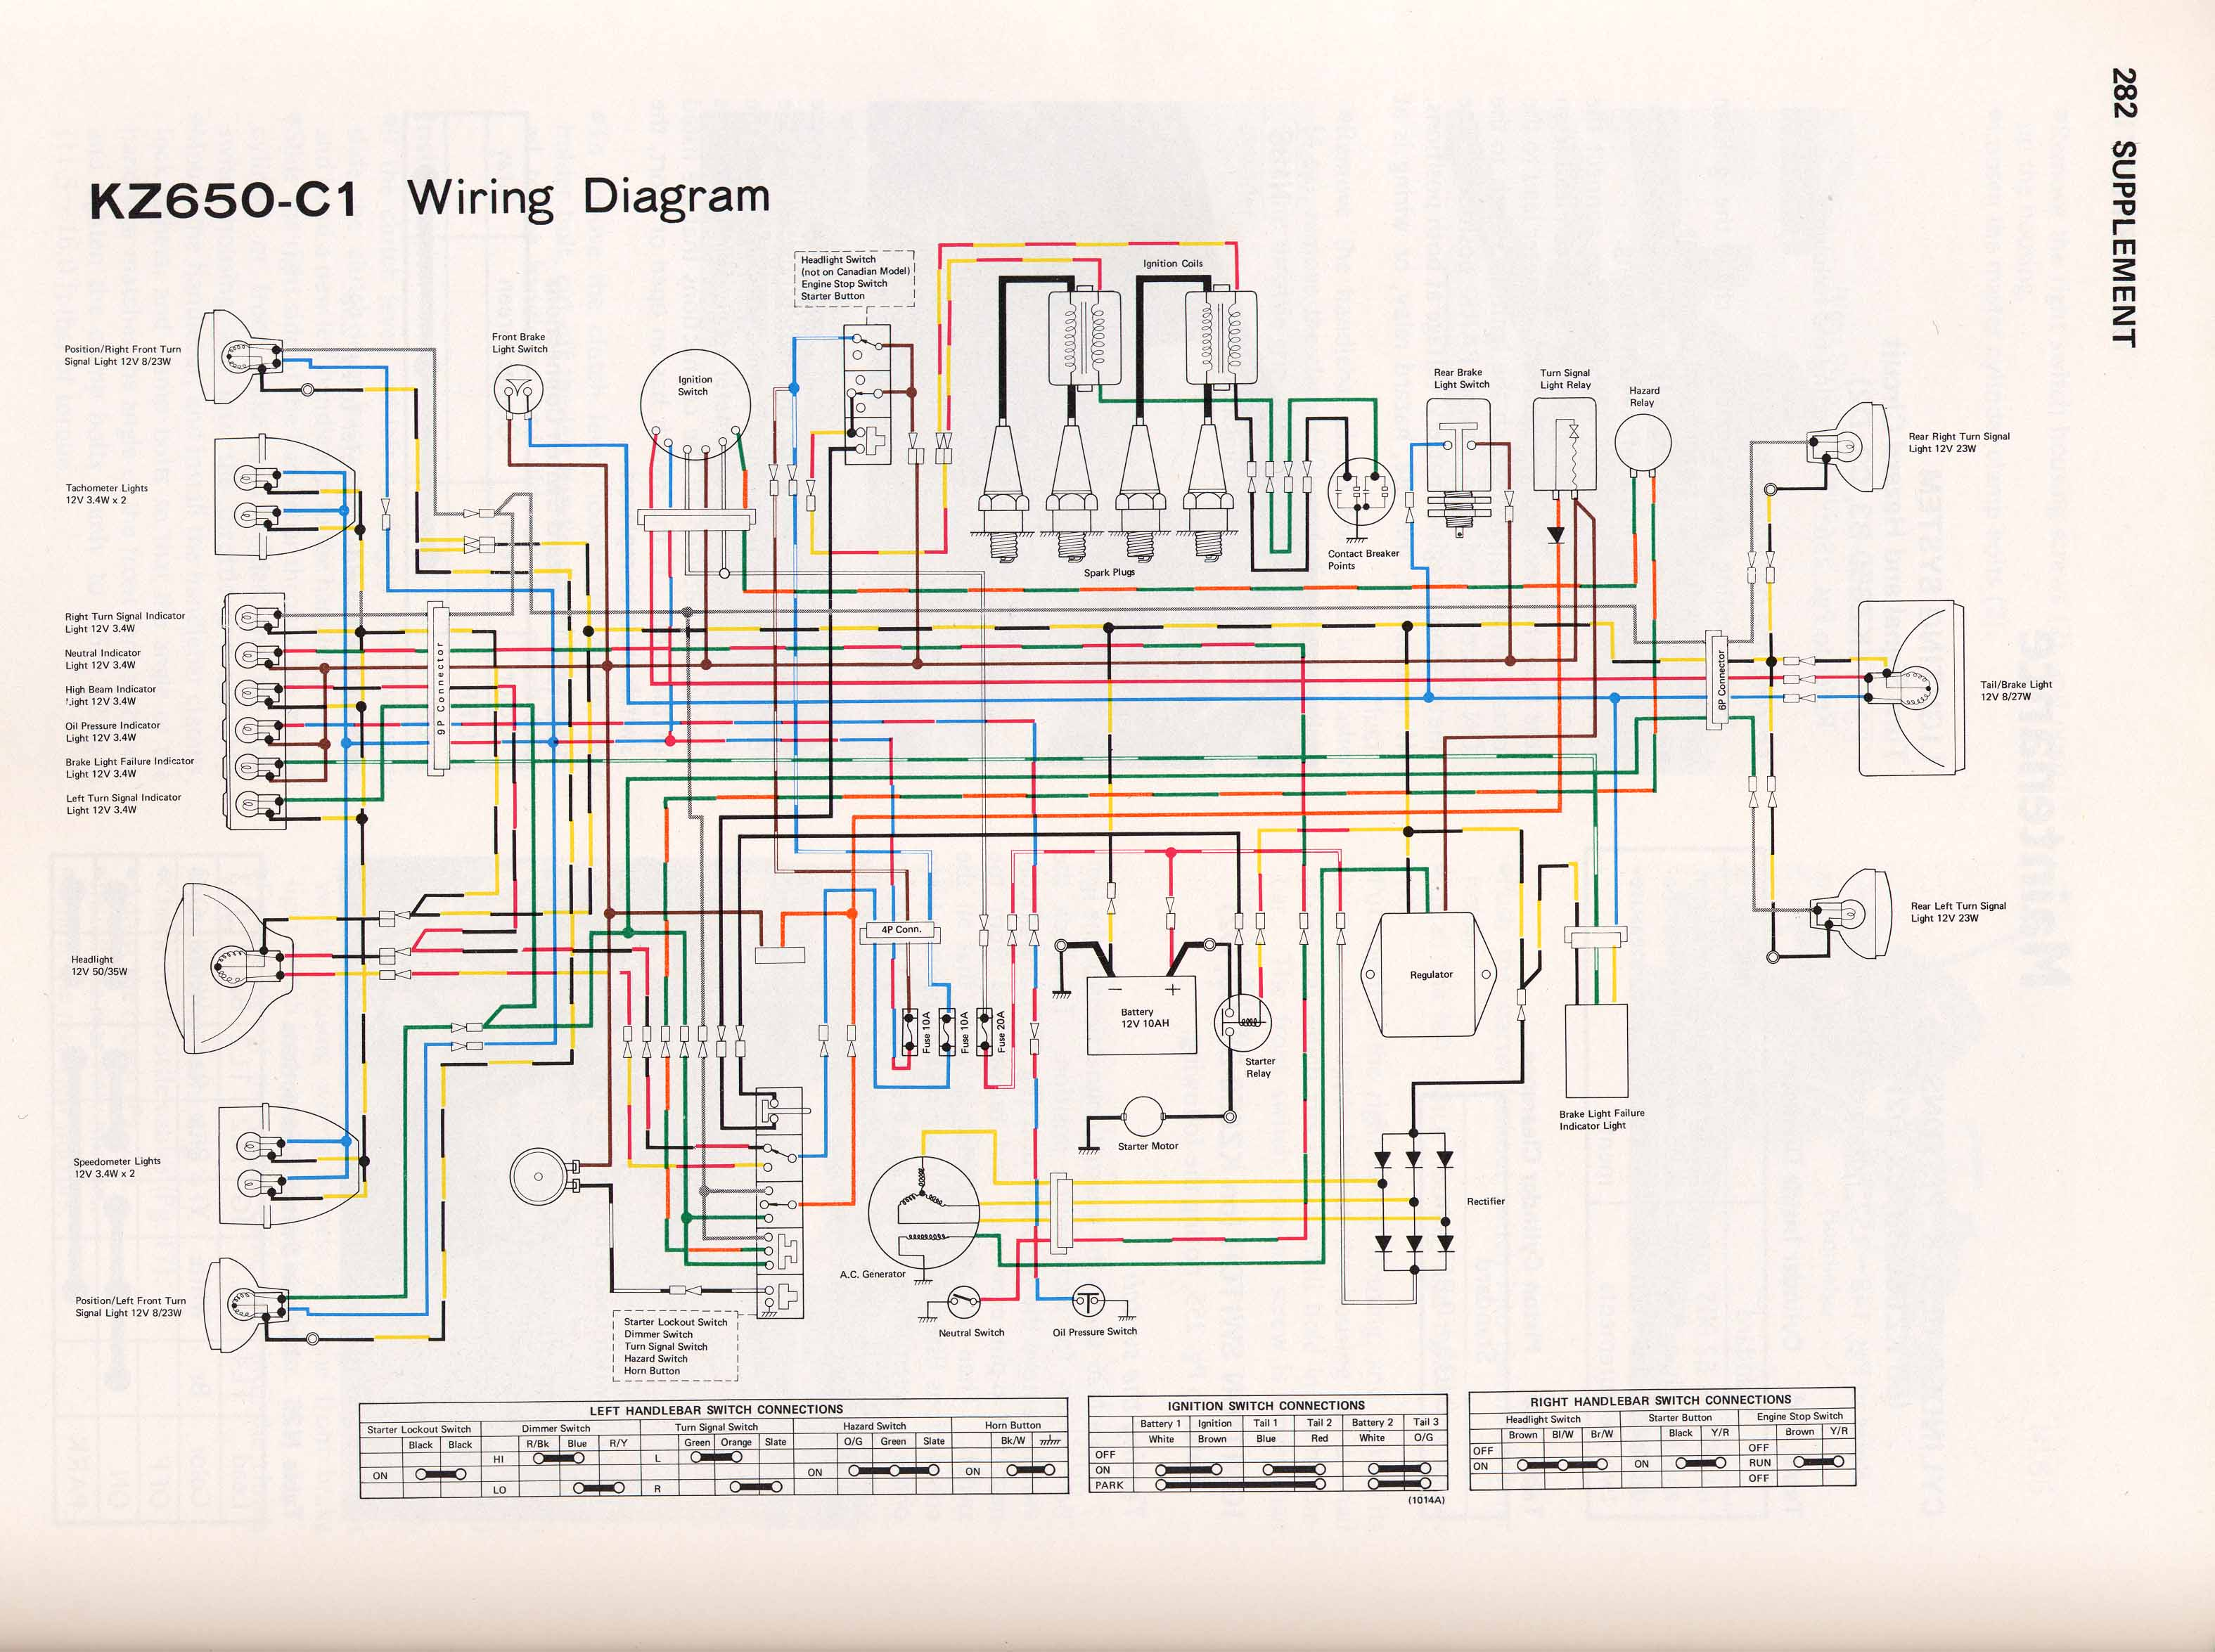 KZ650 C1 kawasaki z650 wiring diagram kawasaki wiring diagrams instruction 1980 kz650 wiring diagram at readyjetset.co